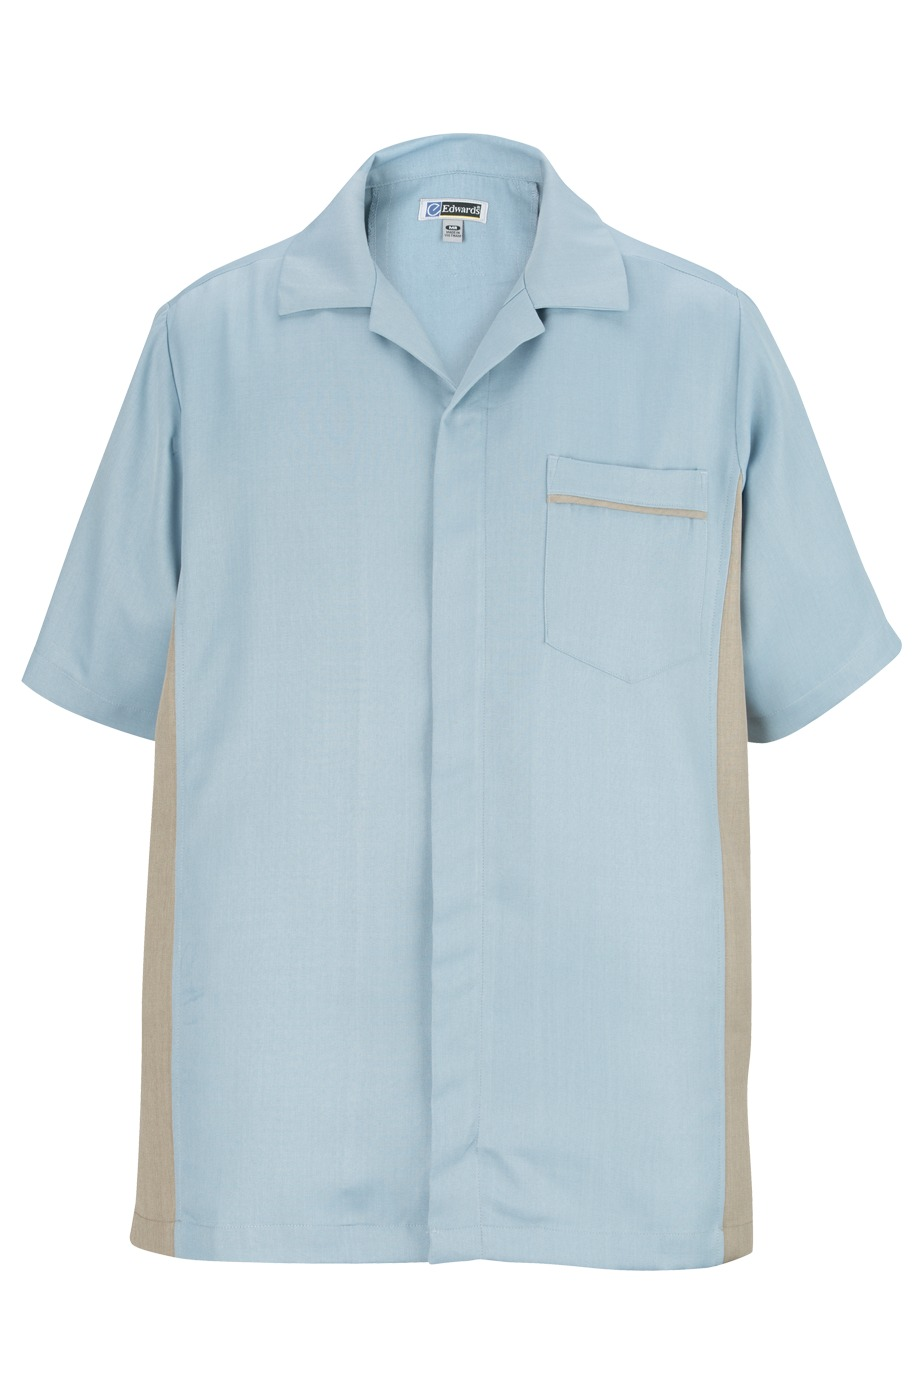 Edwards Garment 4890 - Premier Service Shirt